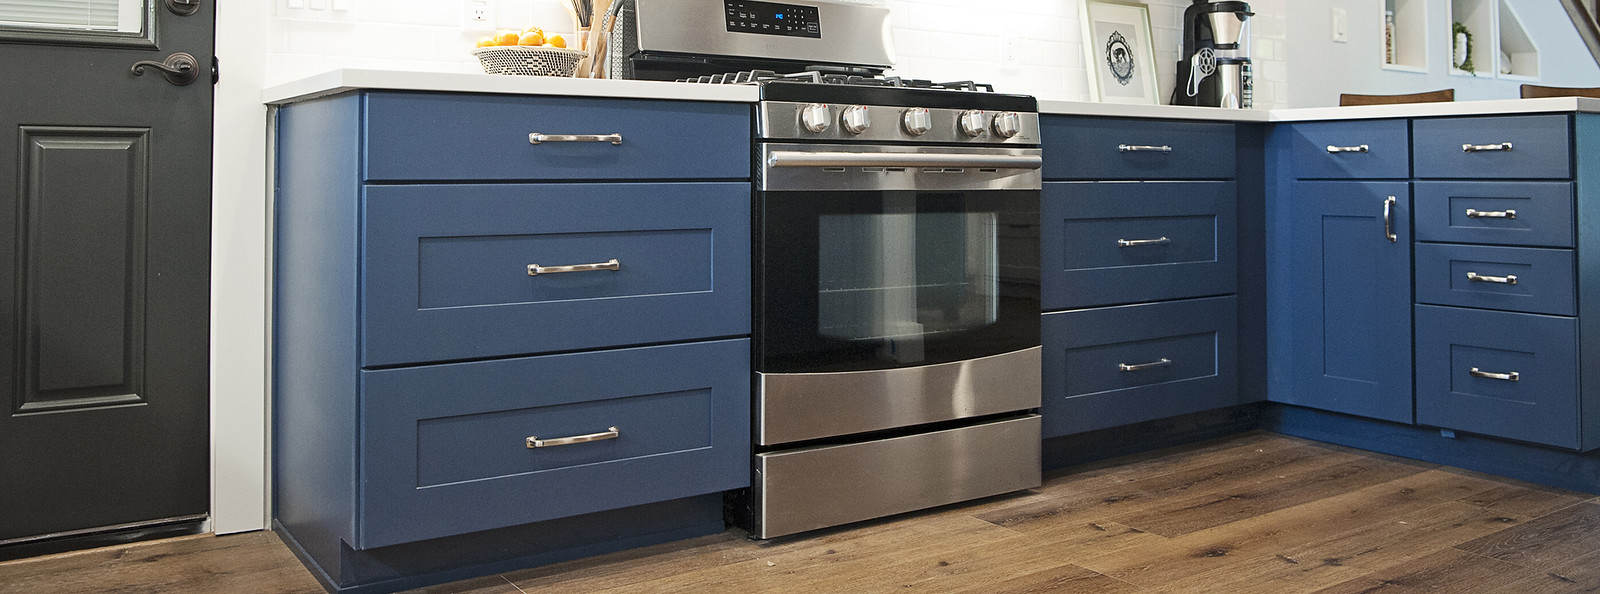 trend alert: blue kitchen cabinets | wolf home products